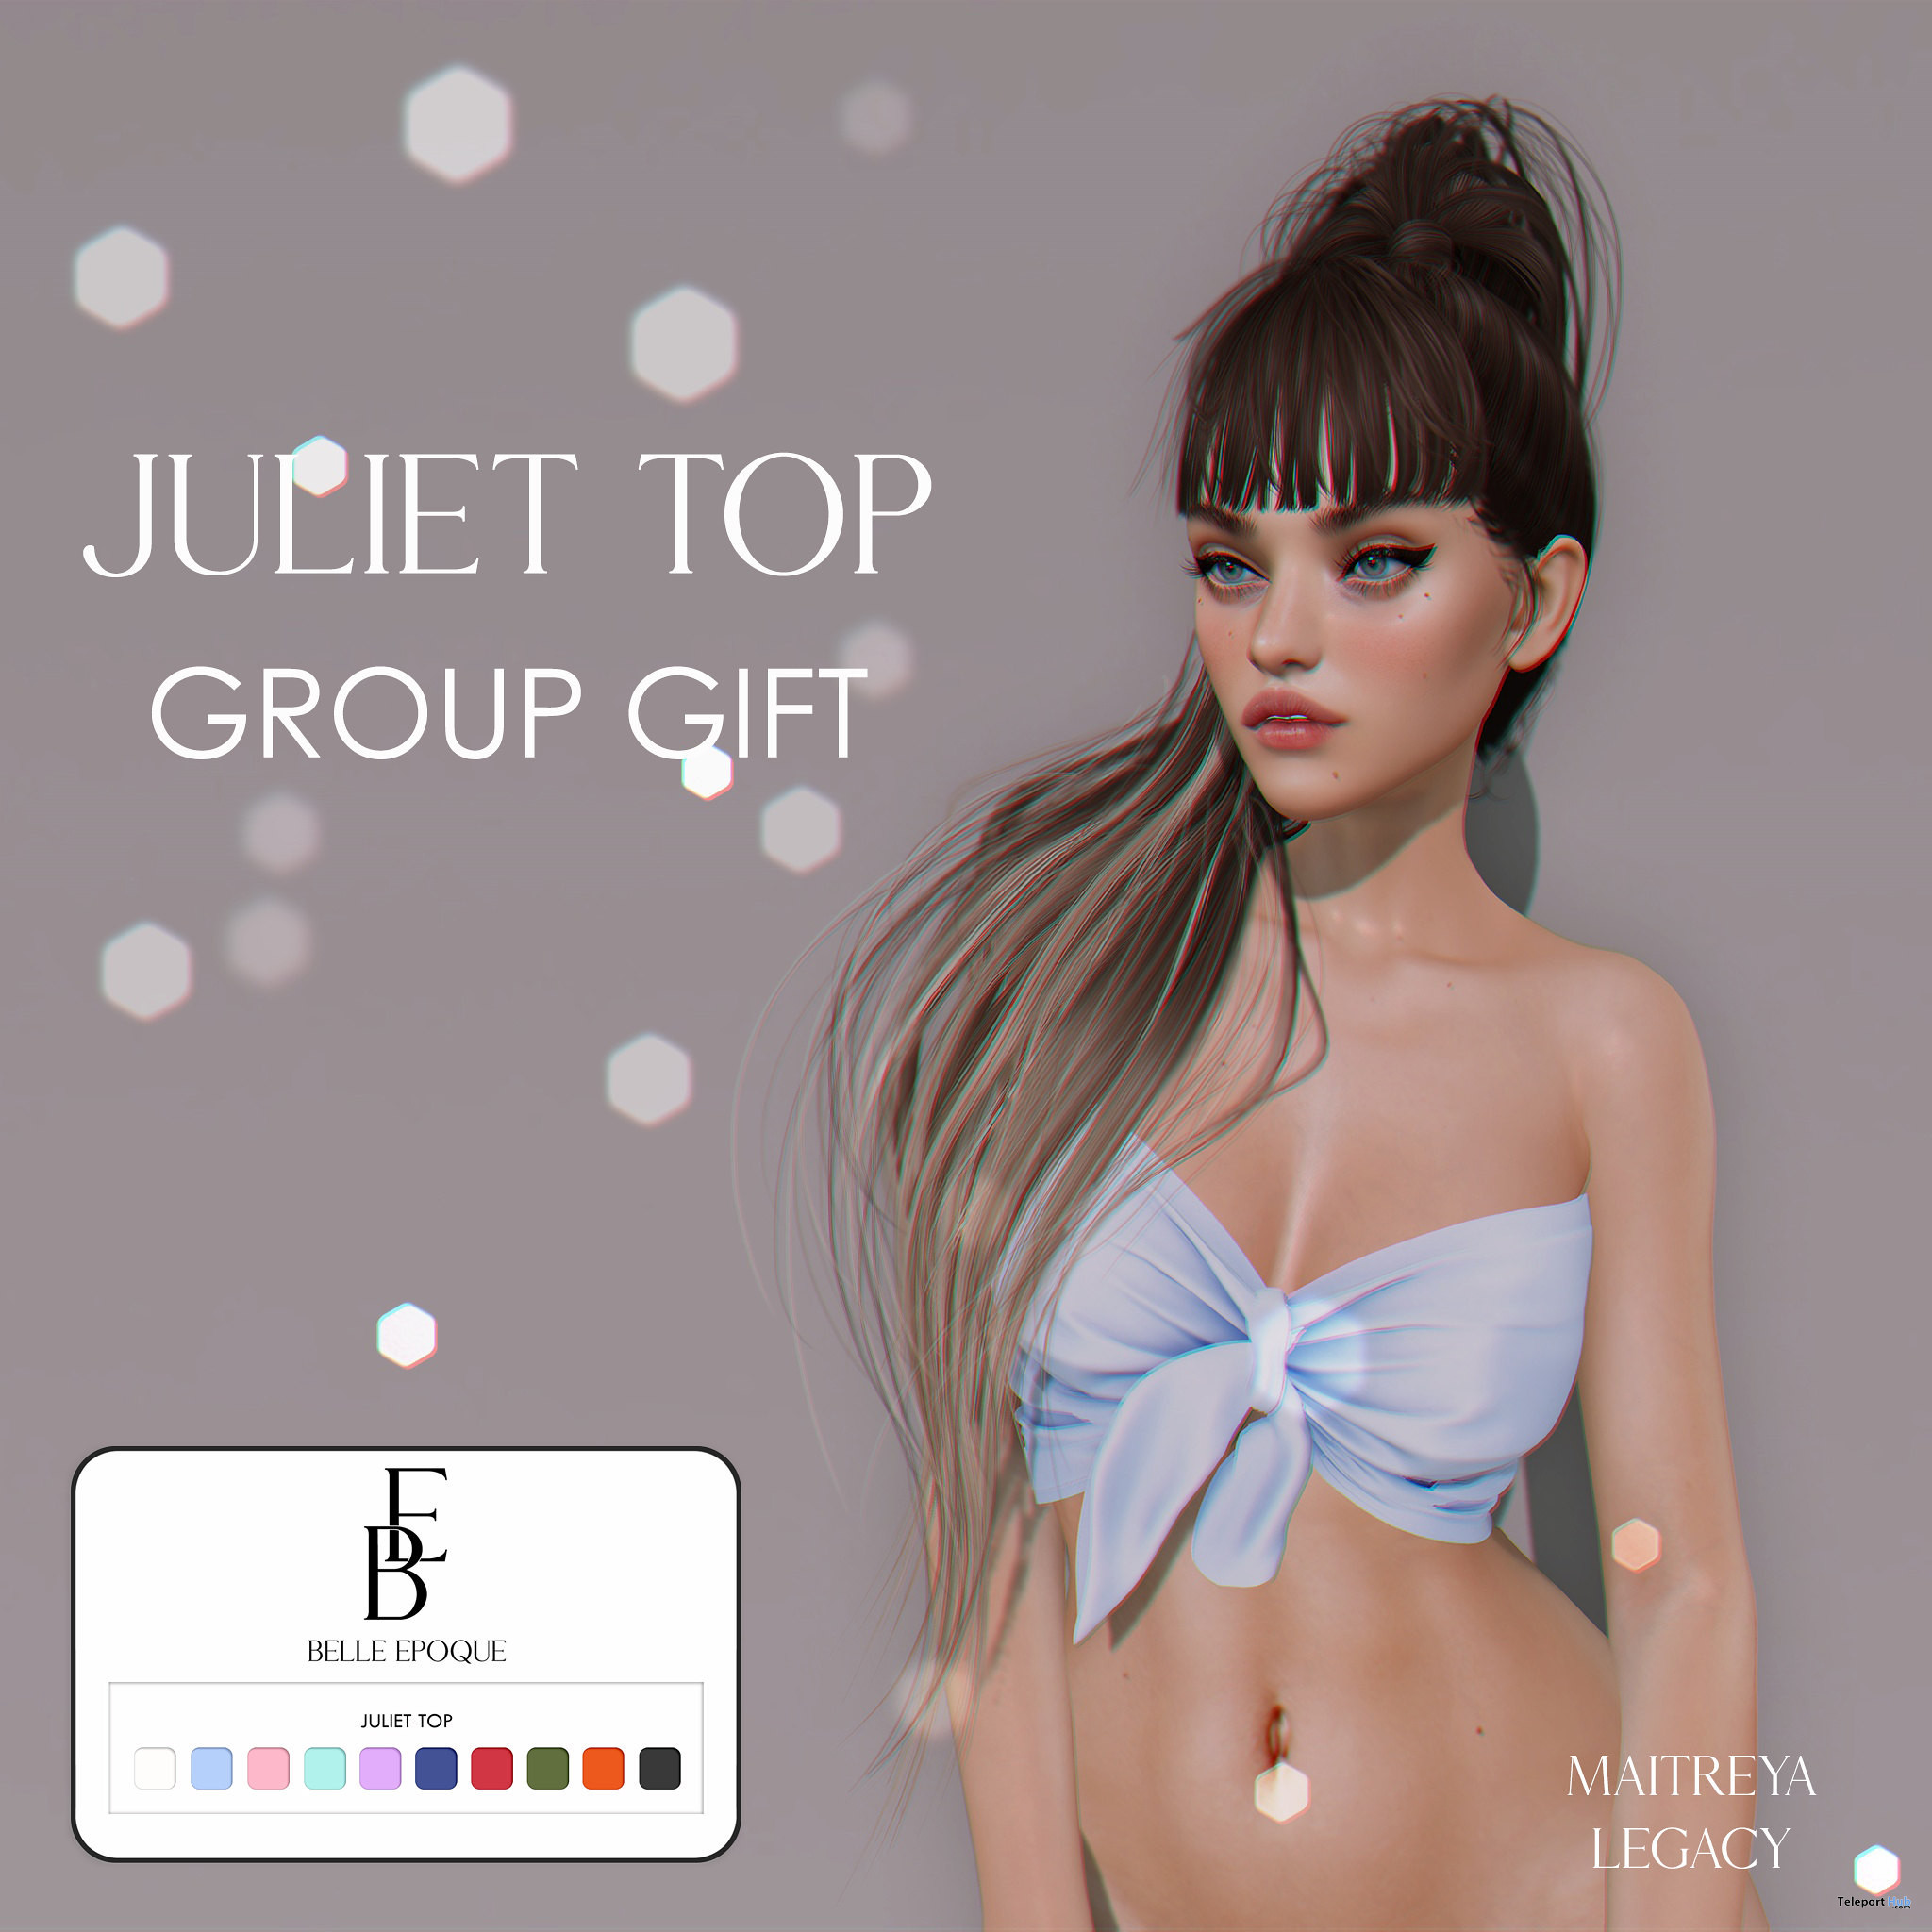 Juliet Top Fatpack July 2021 Group Gift by Belle Epoque - Teleport Hub - teleporthub.com